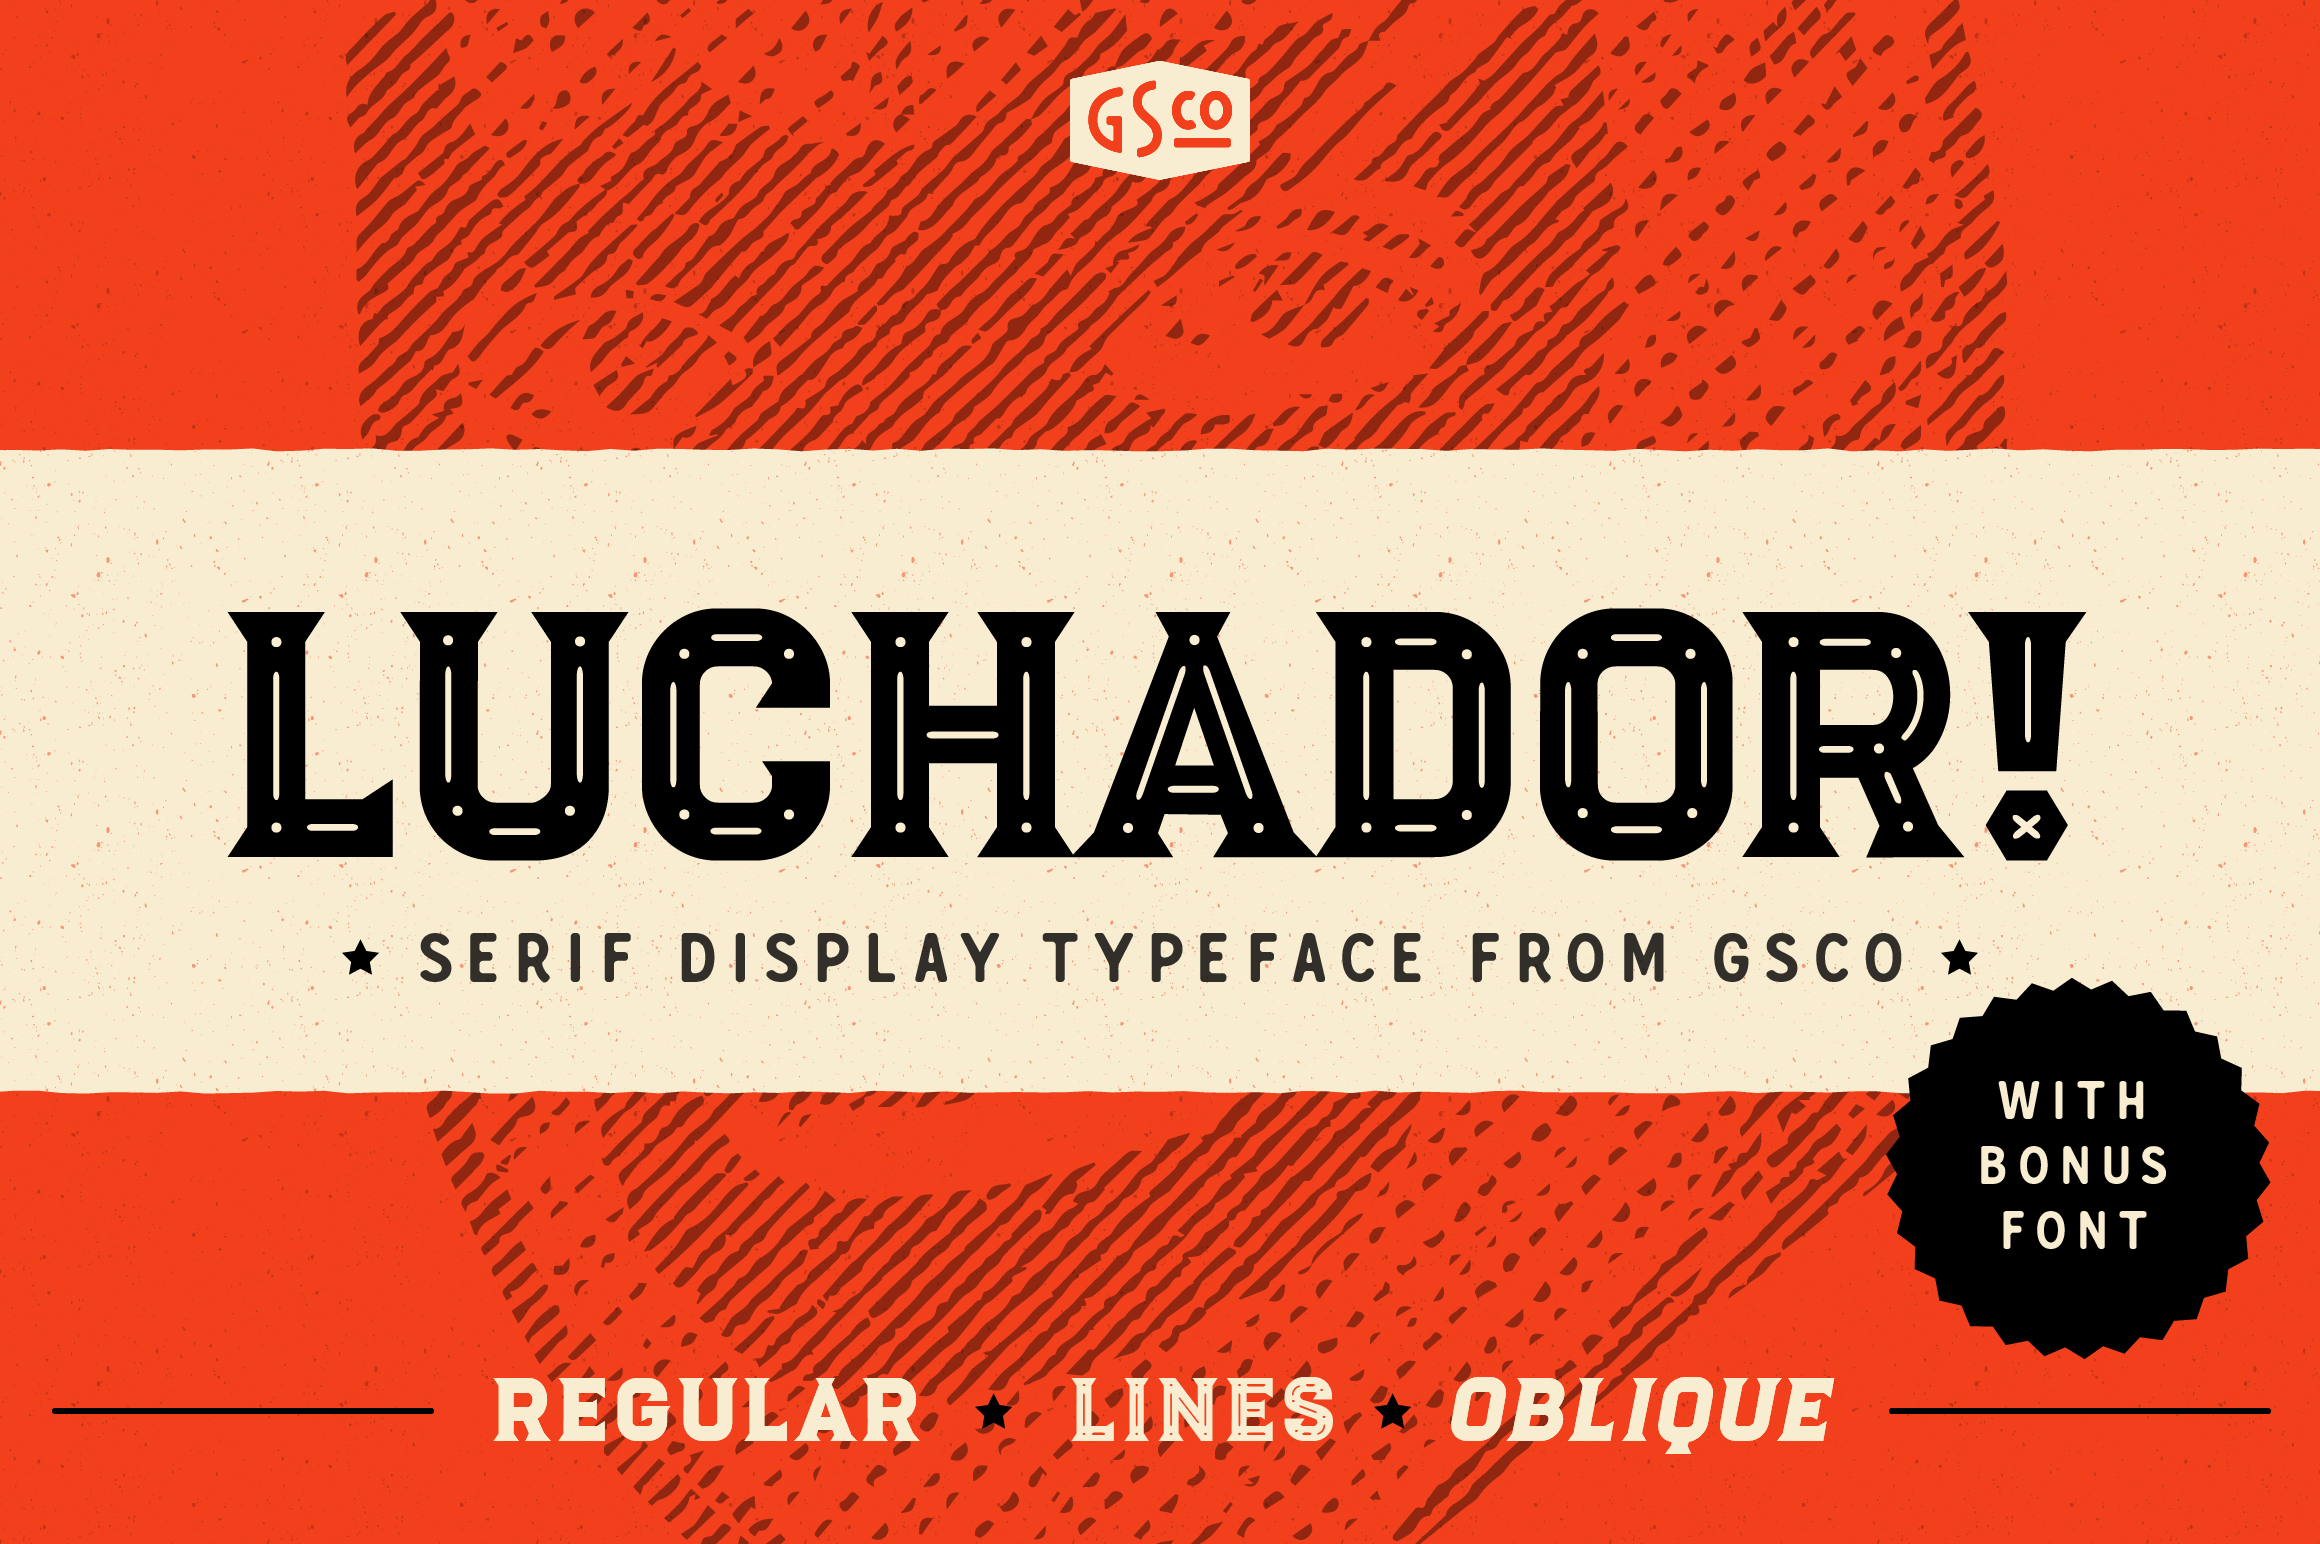 Download Luchador | Mexican fonts, Latest fonts, Mexican graphic design